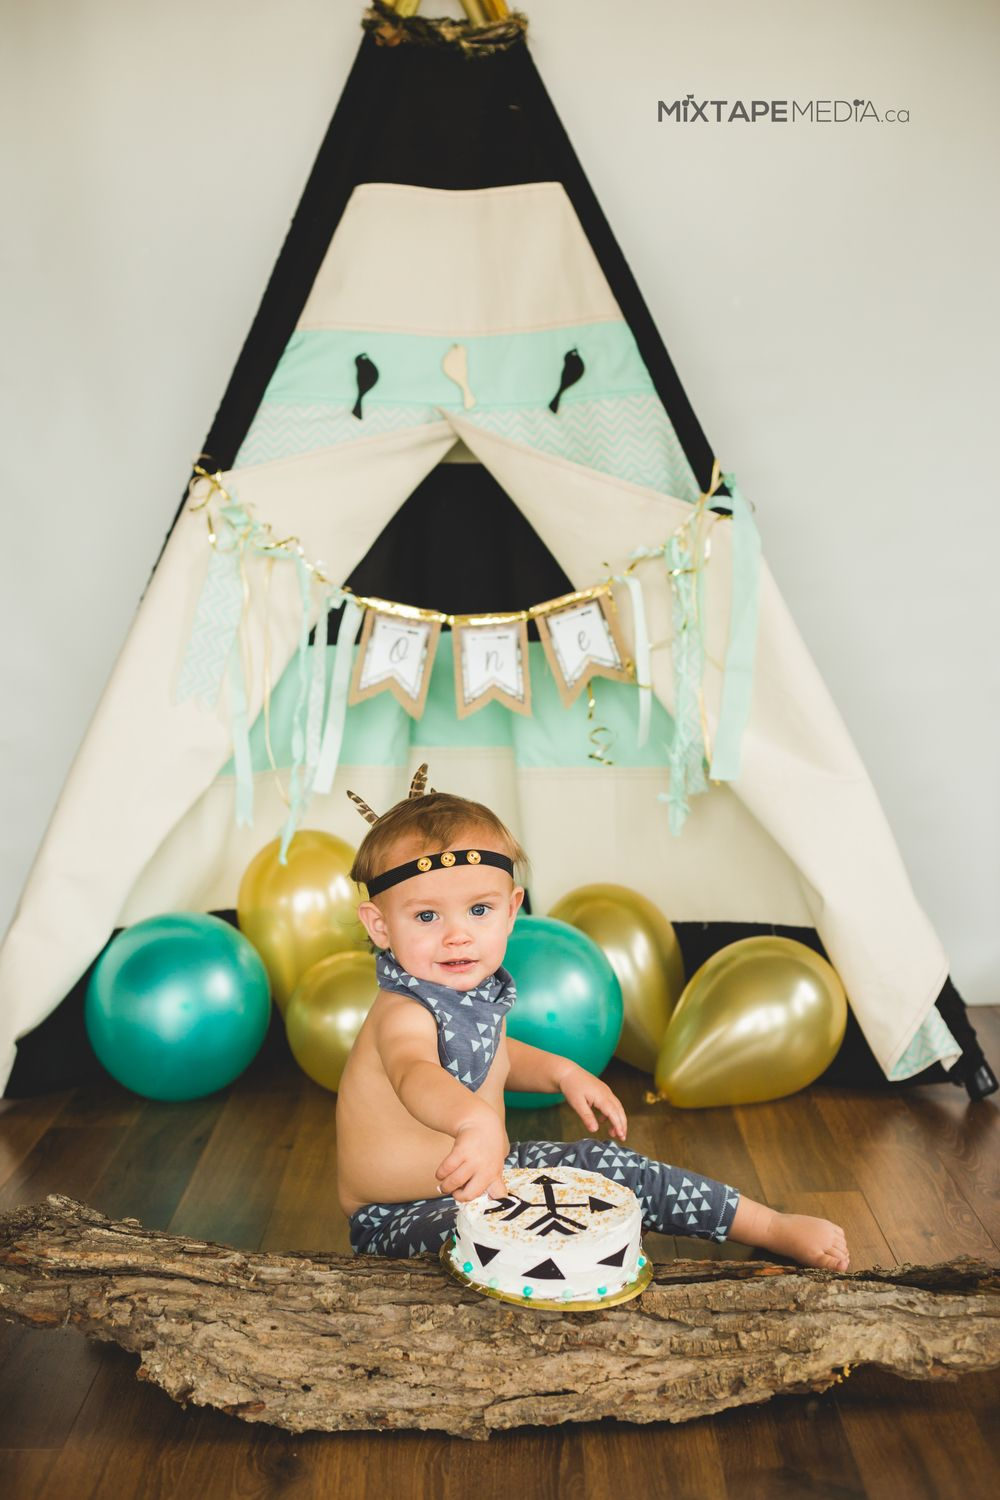 Aztec Teepee Cake Smash First Birthday Party Photography 1 One Year Old